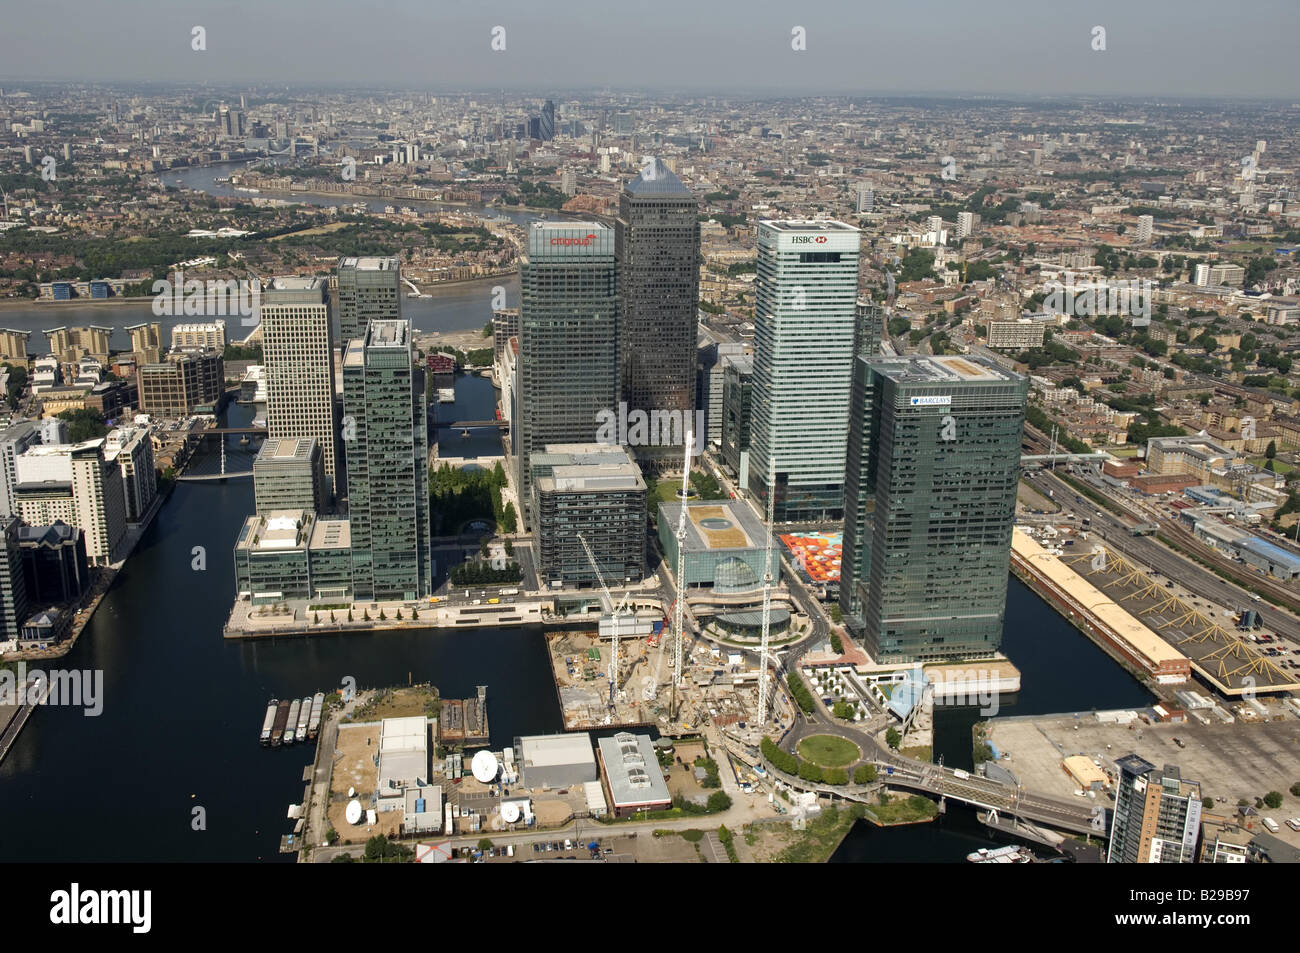 Canary wharf Date 12 03 2008 Ref ZB648 111149 0017 COMPULSORY CREDIT World Pictures Photoshot - Stock Image